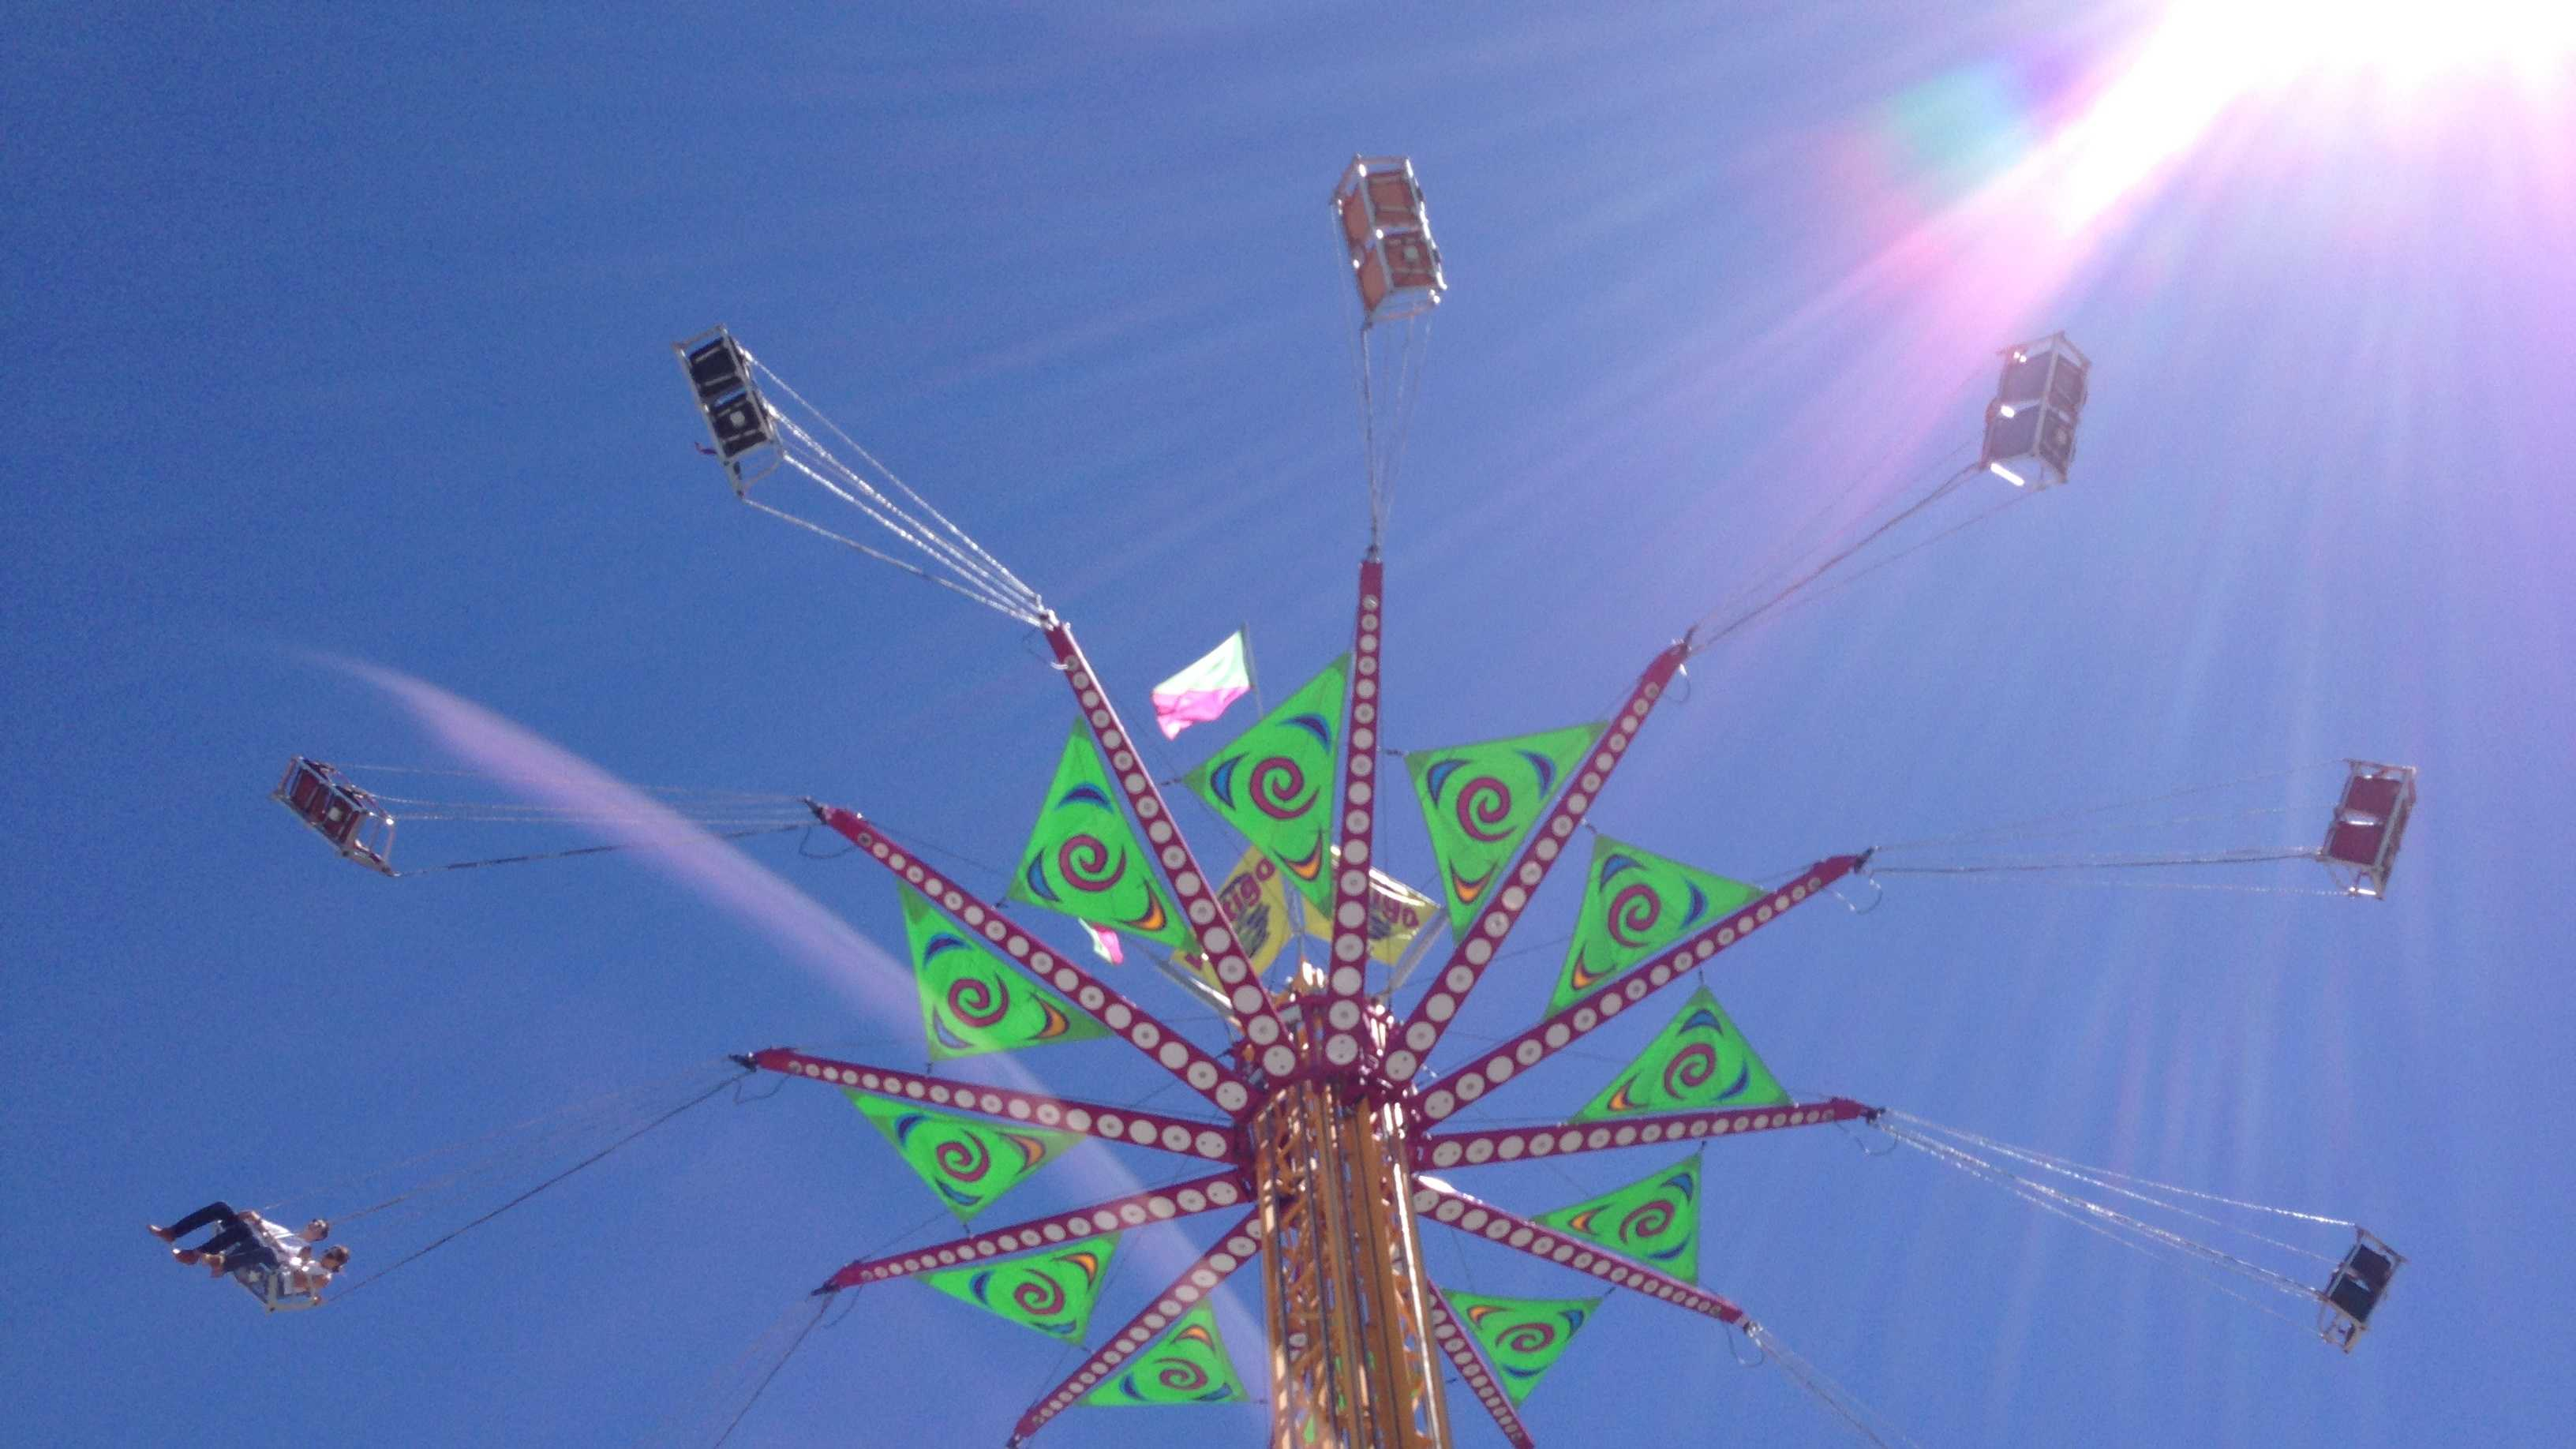 The Vertigo is a new ride at the State Fair. It takes people on a swing ride nearly 100 feet in the air.